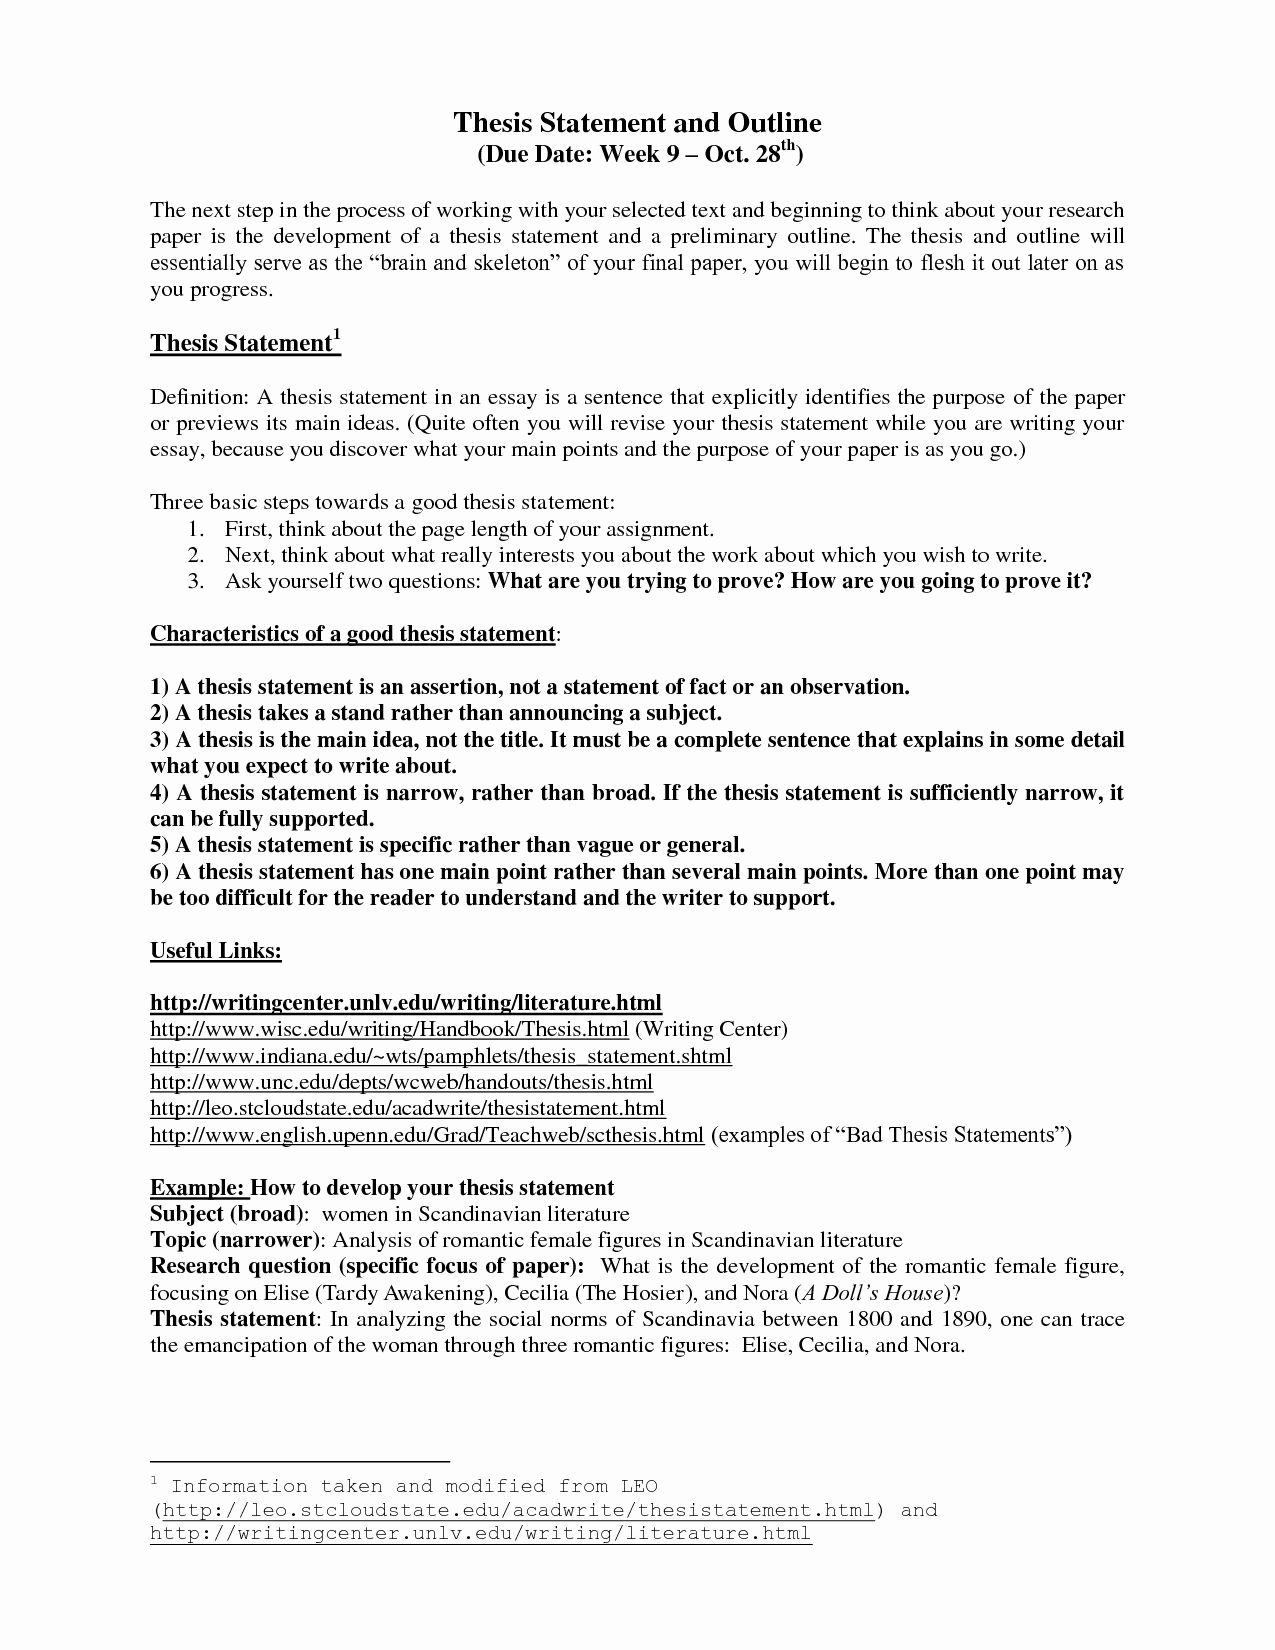 Apa thesis format example best dissertation results writers for hire au